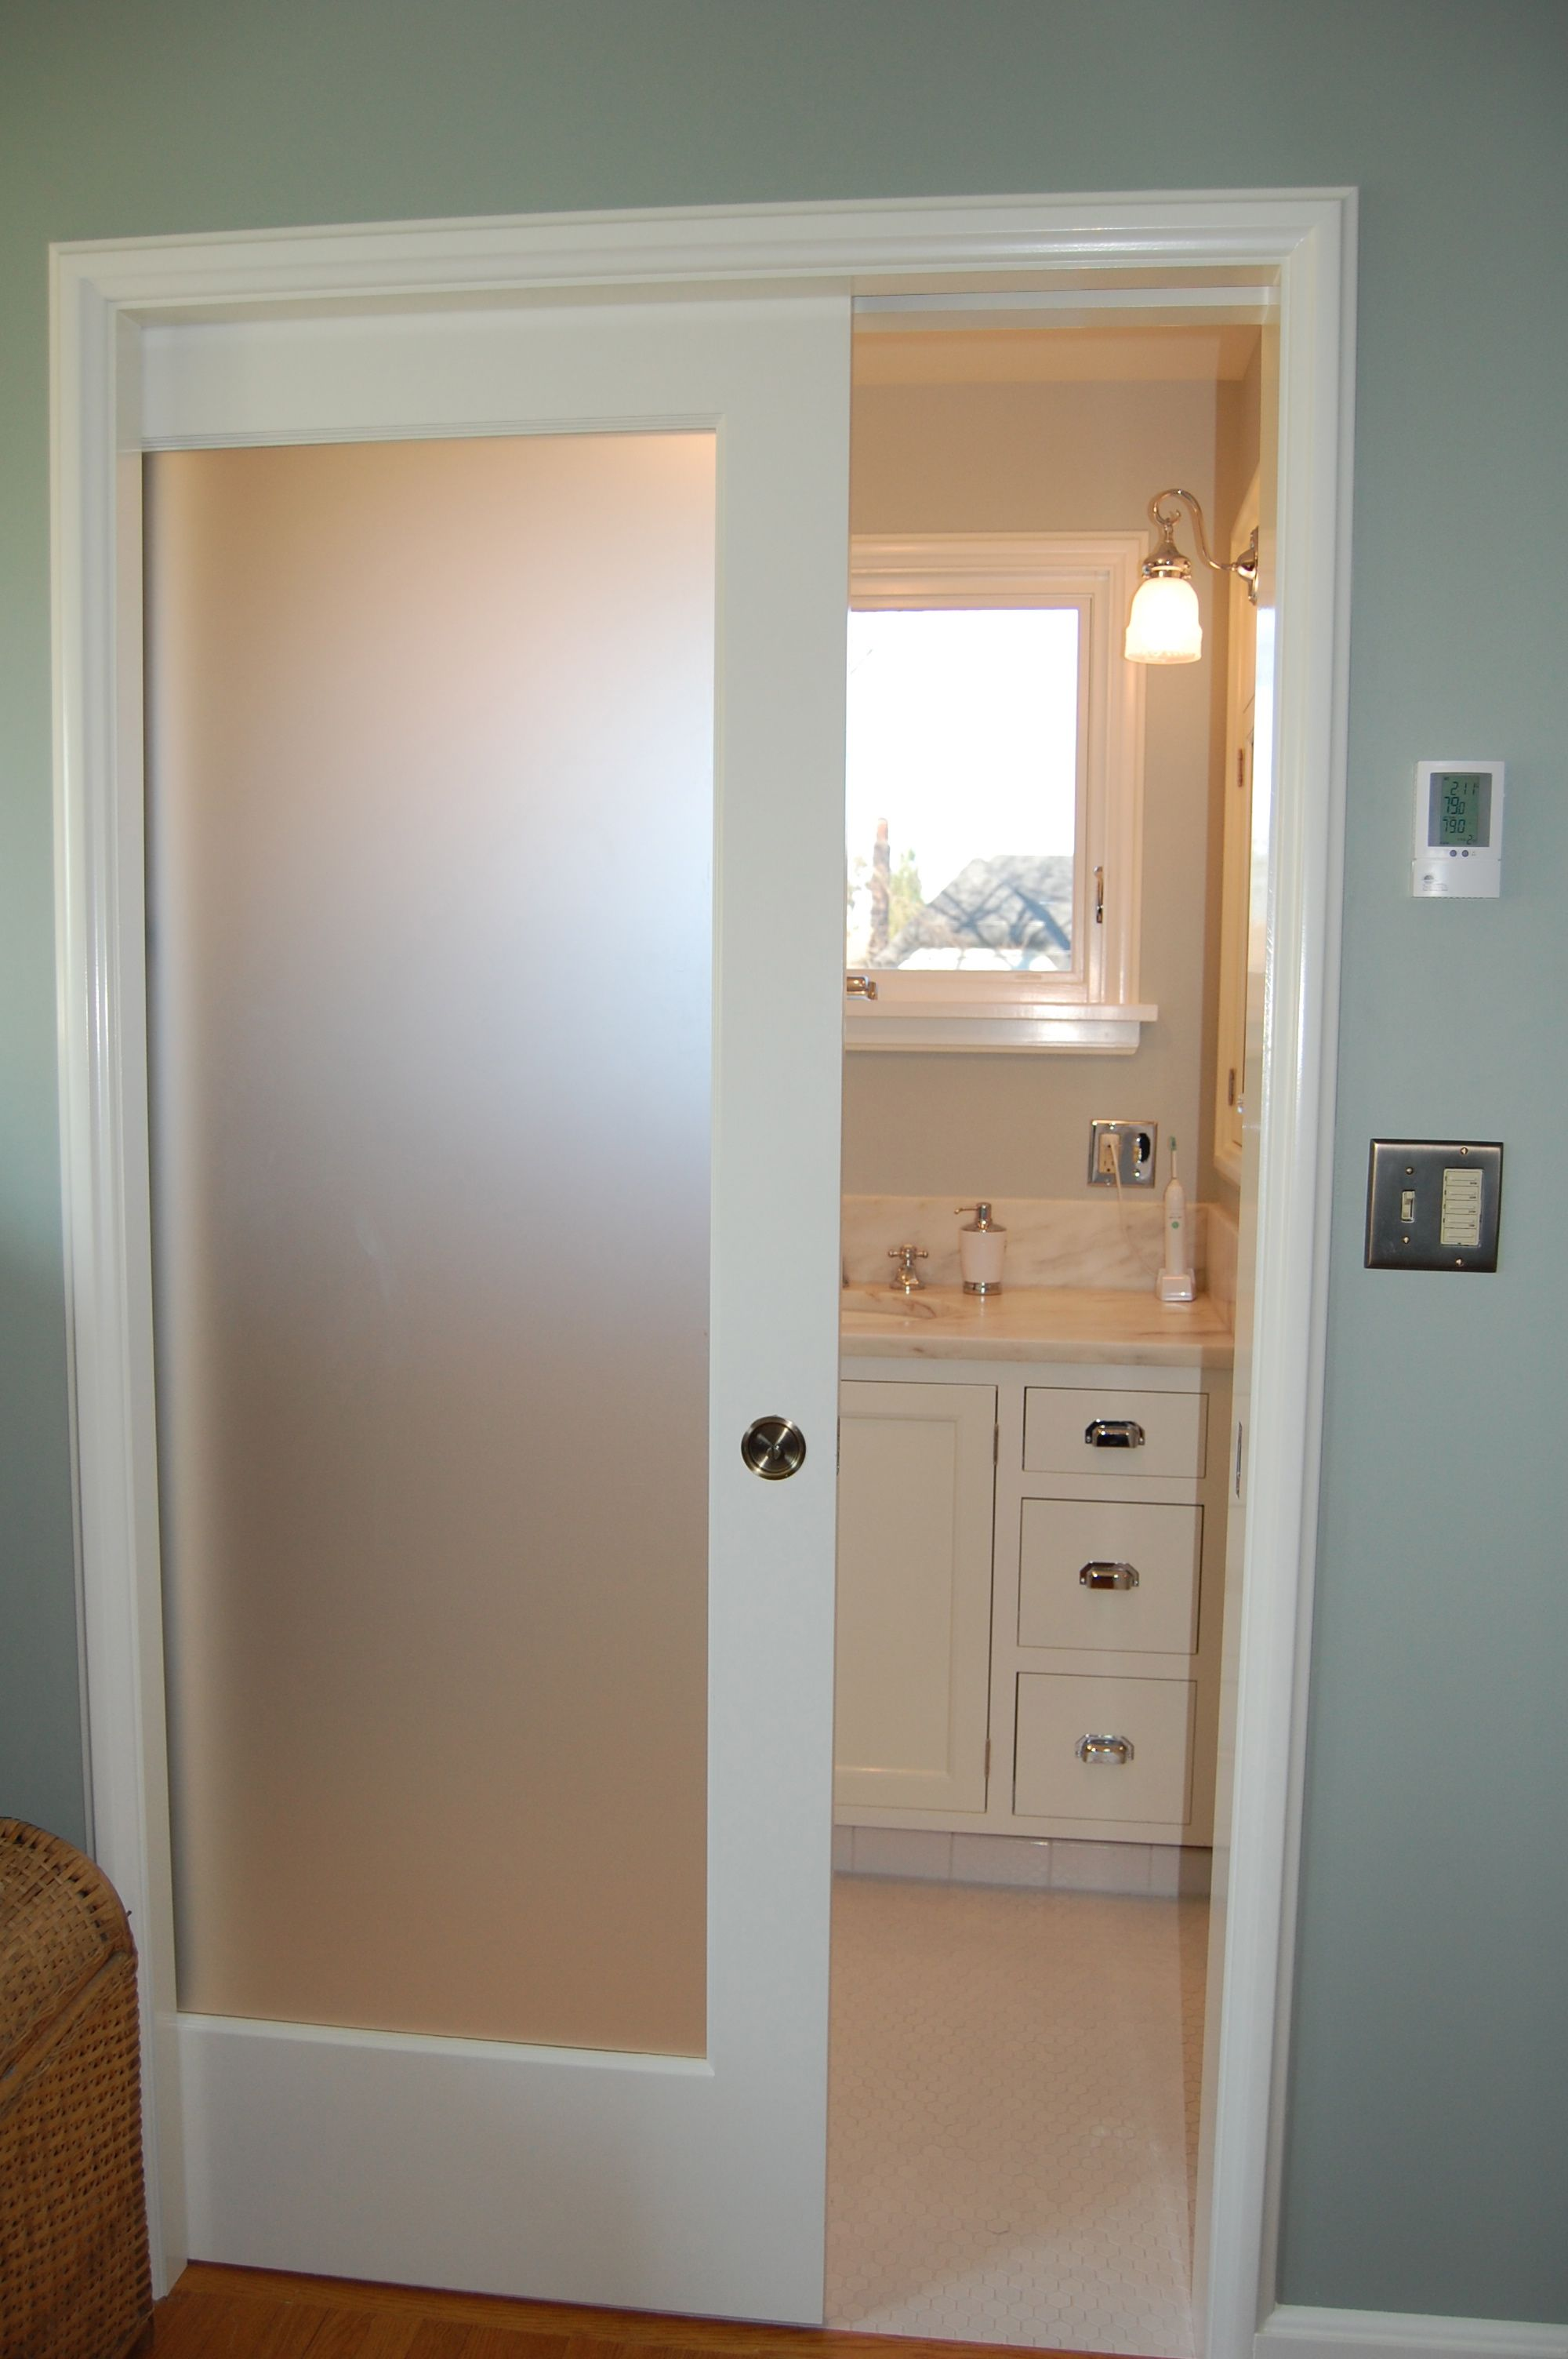 Bathroom Doors alameda remodel is complete! | pocket doors, doors and glass